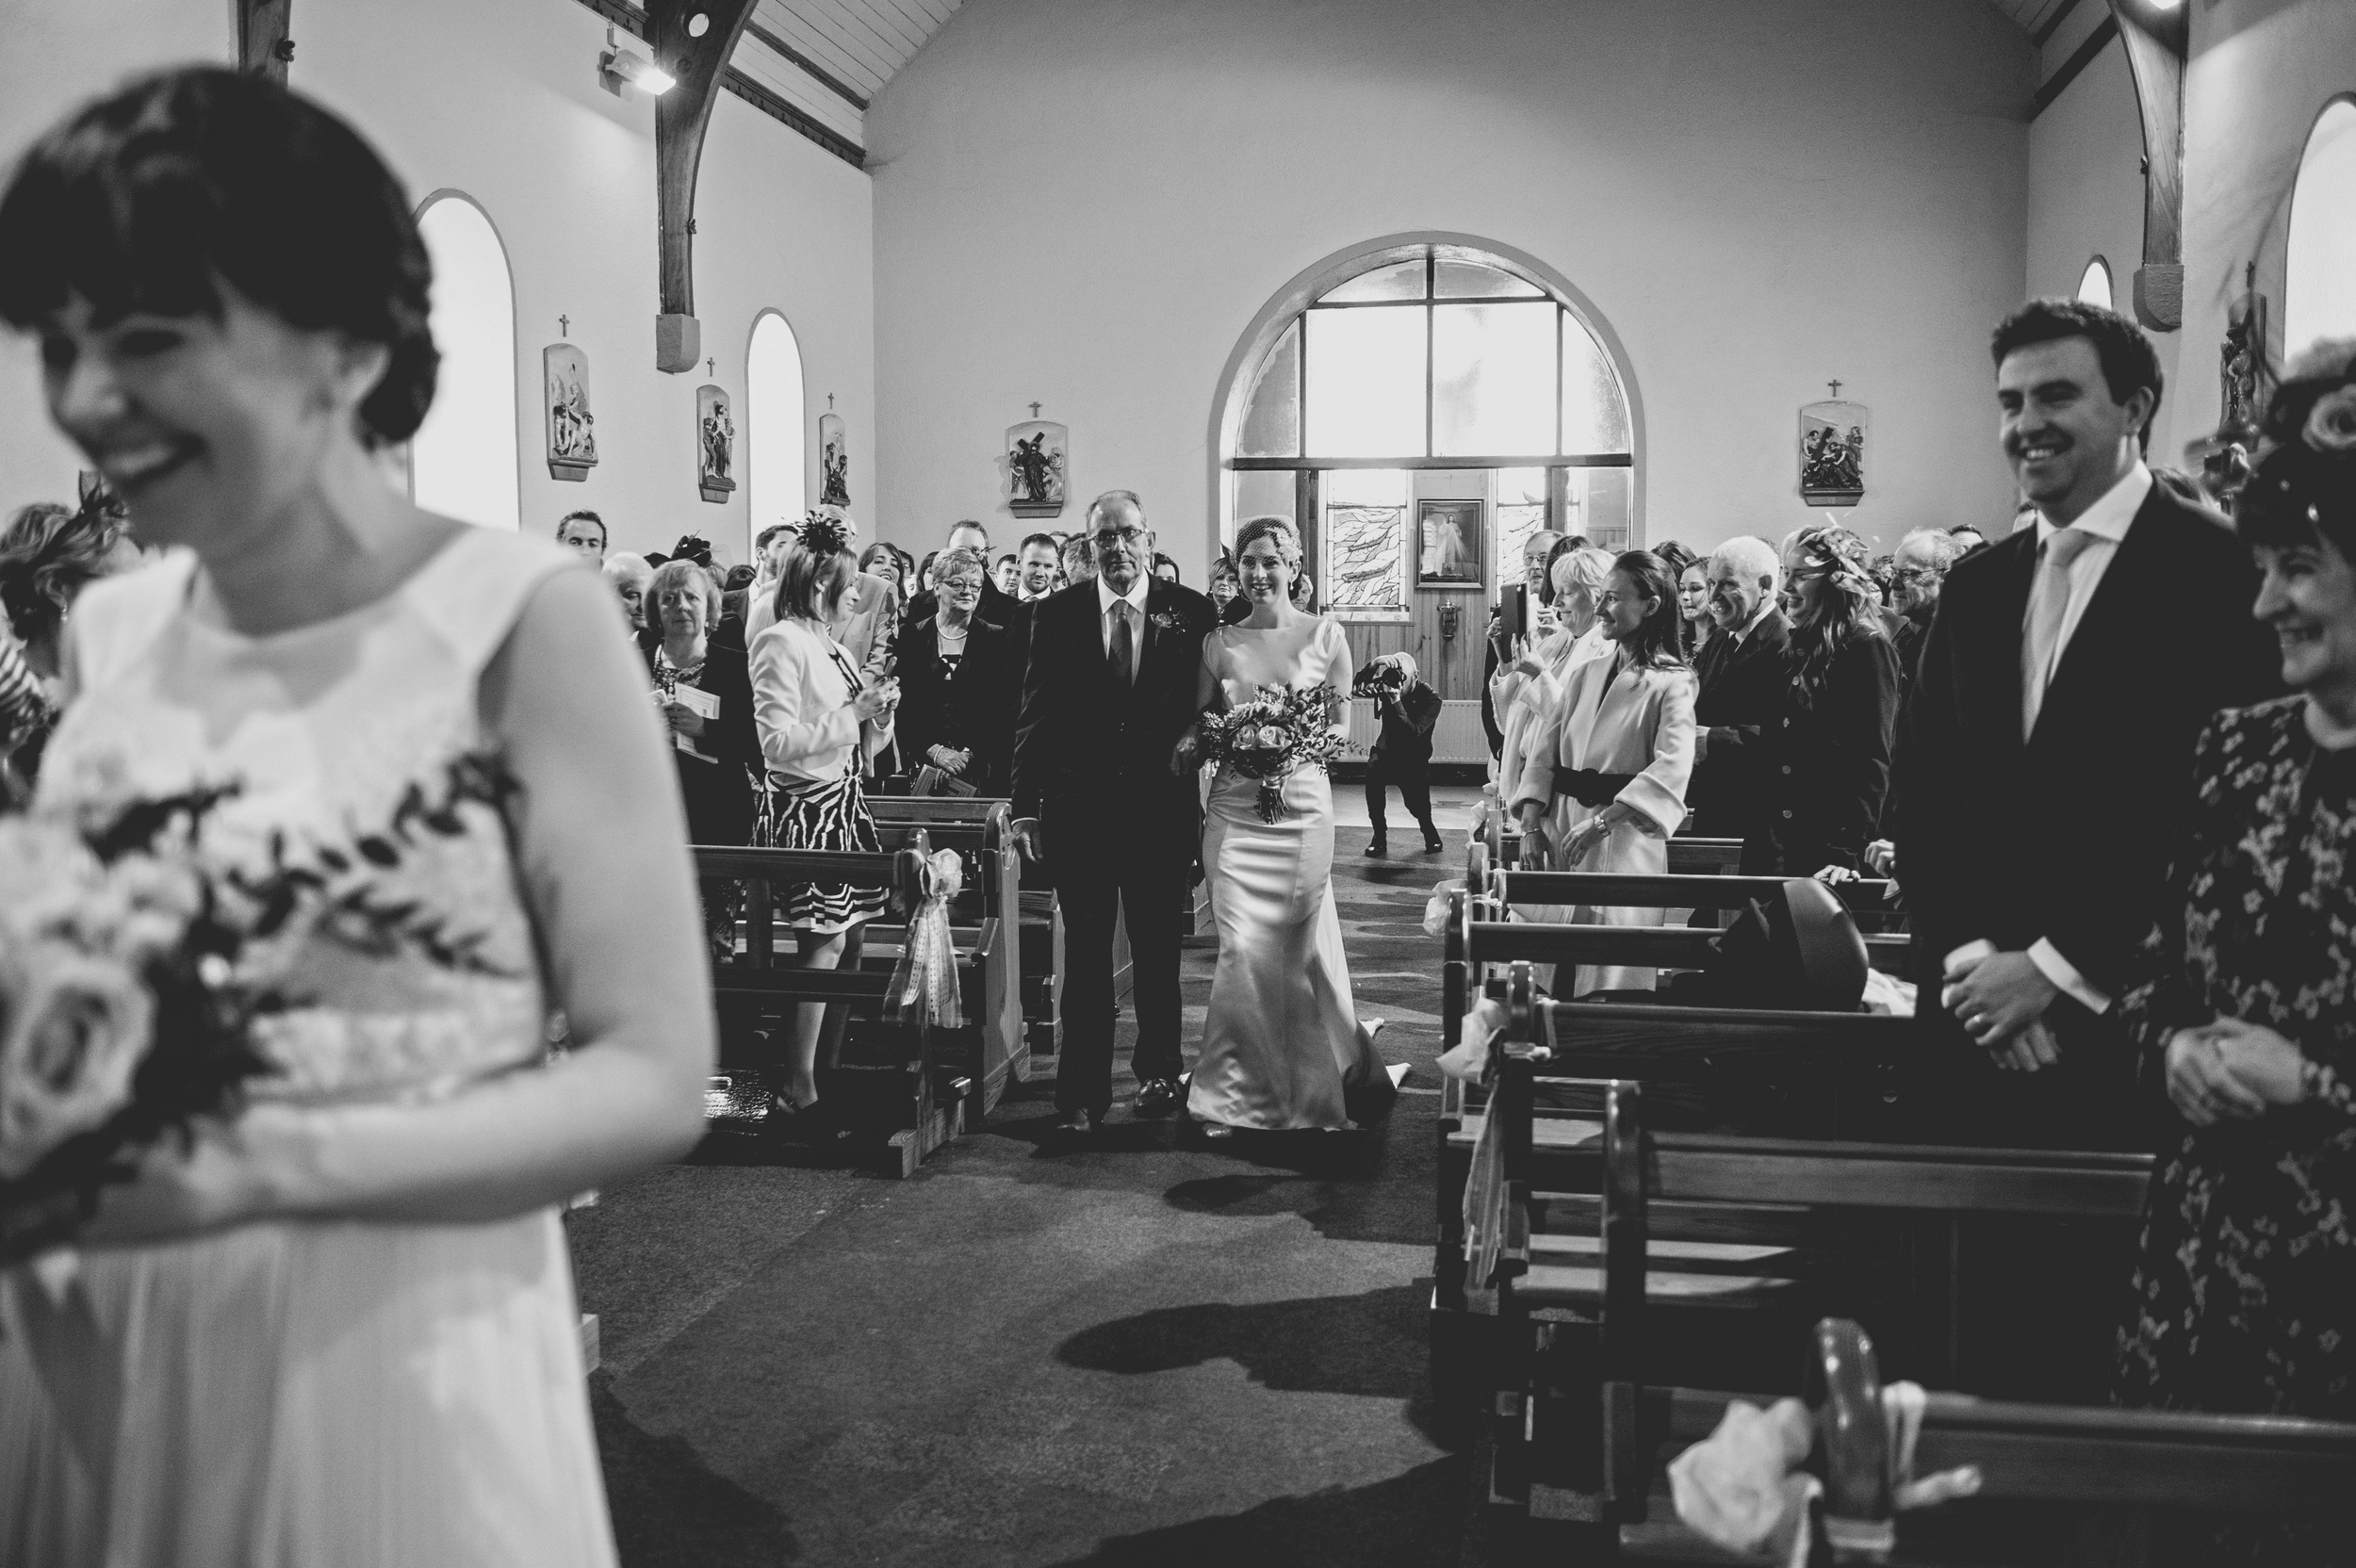 Walking up the aisle